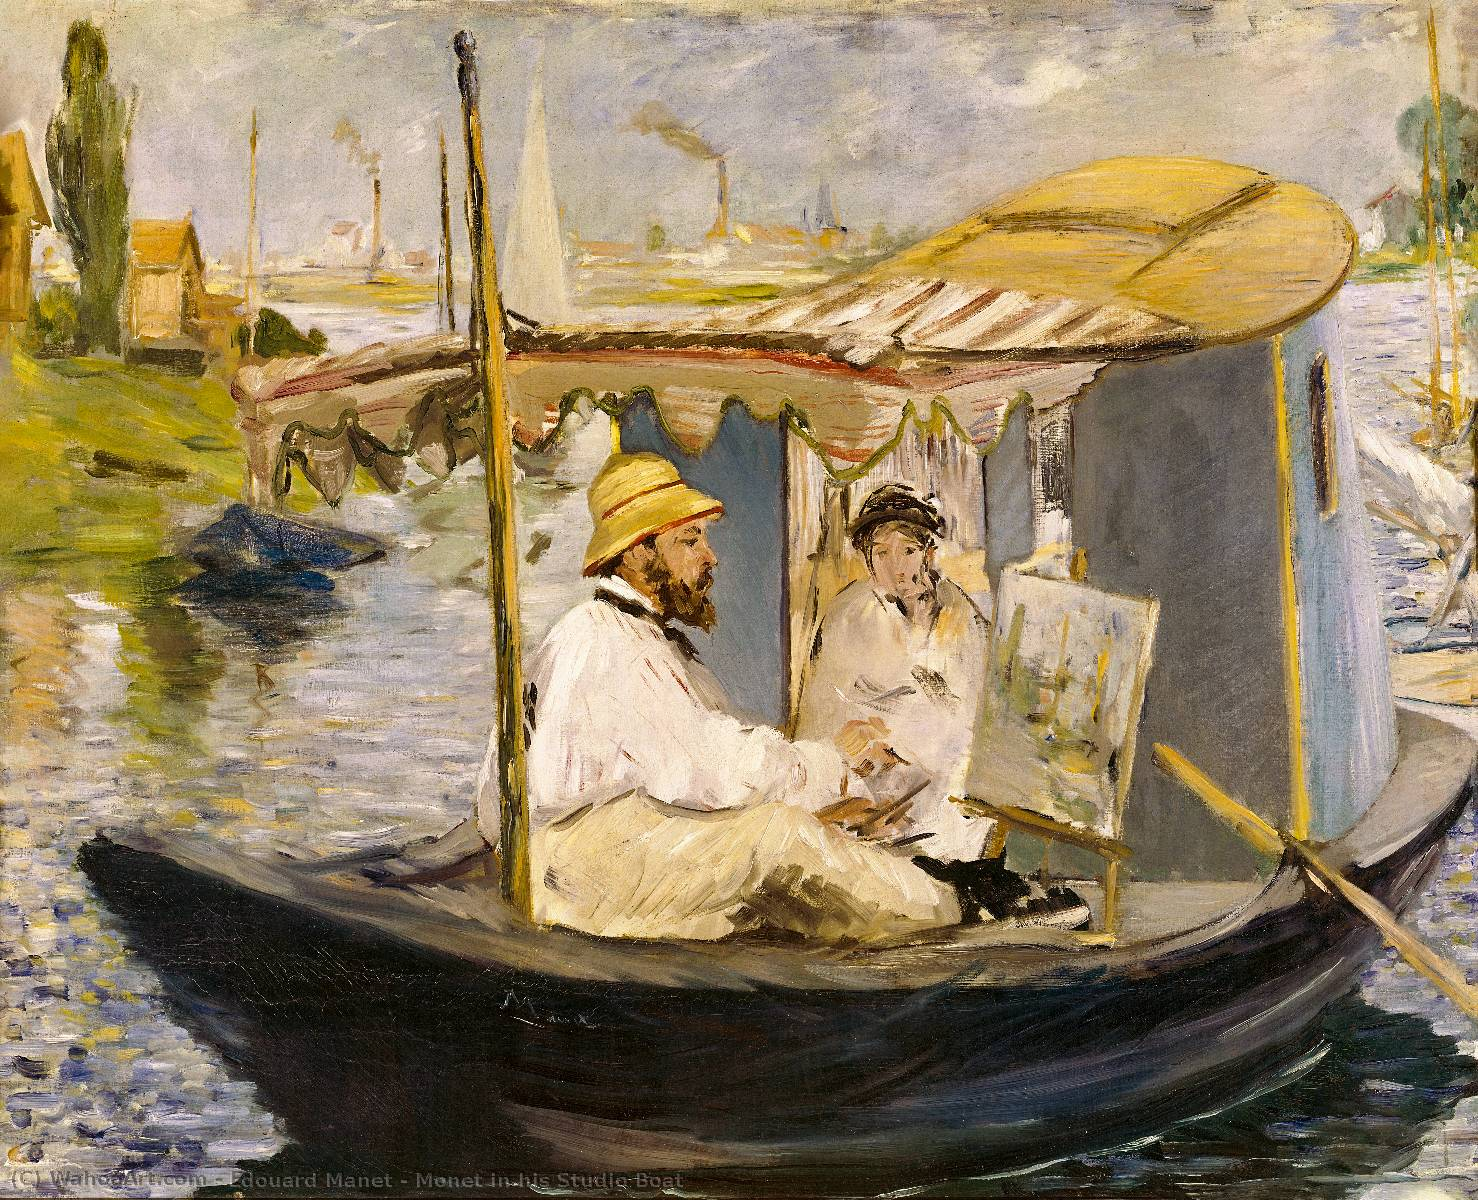 famous painting Monet in his Studio Boat of Edouard Manet